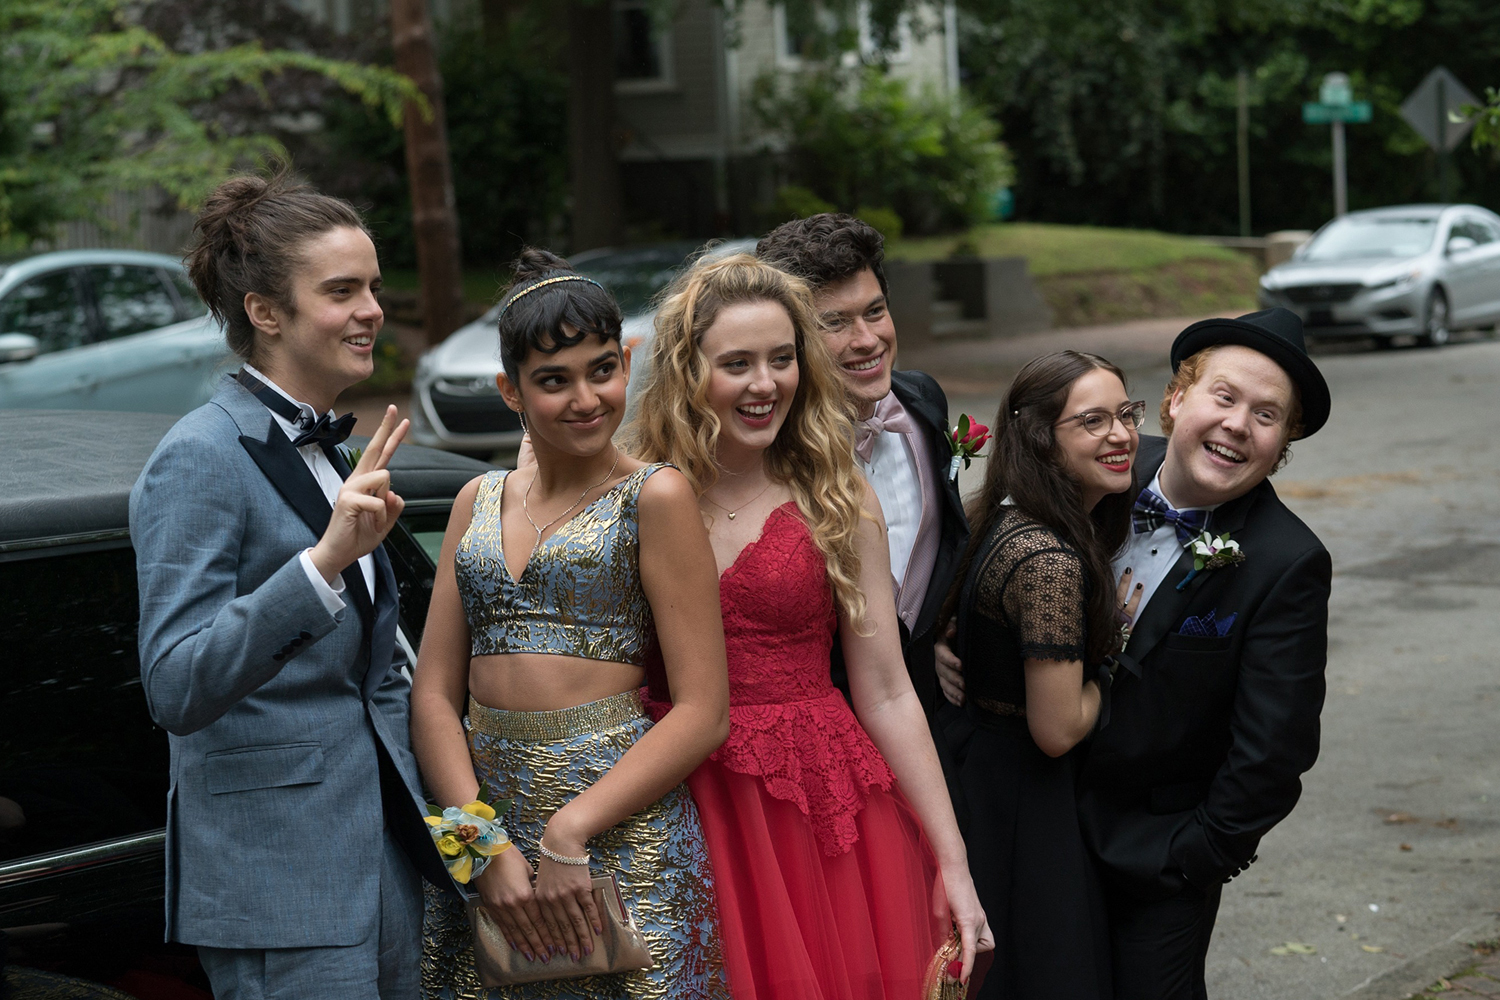 Blockers - A raunchy comedy with a heart of gold, Blockers is one of the funniest films of the year so far. Too often, R-rated comedies dip into a well of cruelty for their jokes, but Blockers is a refreshing change of pace. The story of a group of high schoolers with a pact to lose their virginities and the parents that try to stop them, Pitch Perfect writer Kay Cannon's directorial debut is an uproarious comedy of errors, and hilarious without being mean.